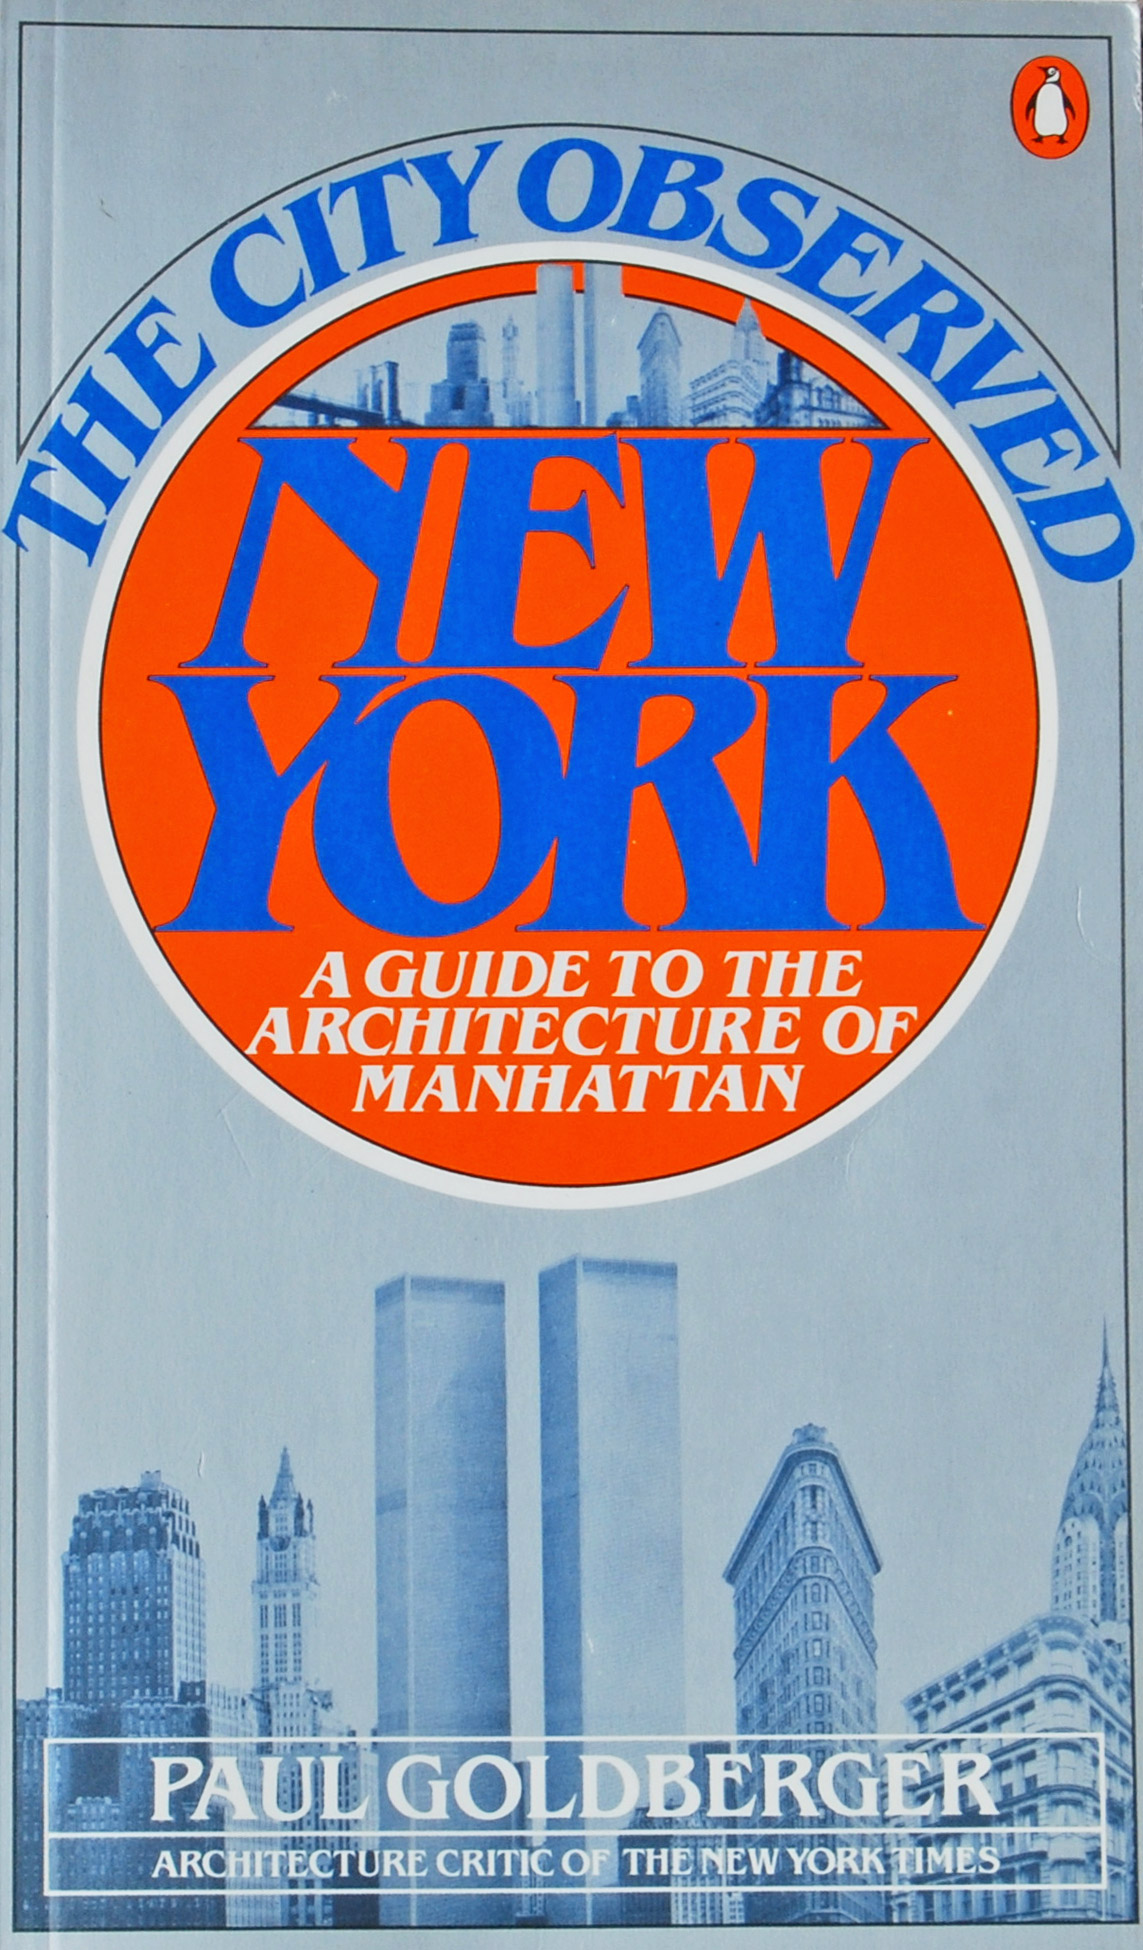 The City Observed New York: A Guide to the Architecture of Manhattan